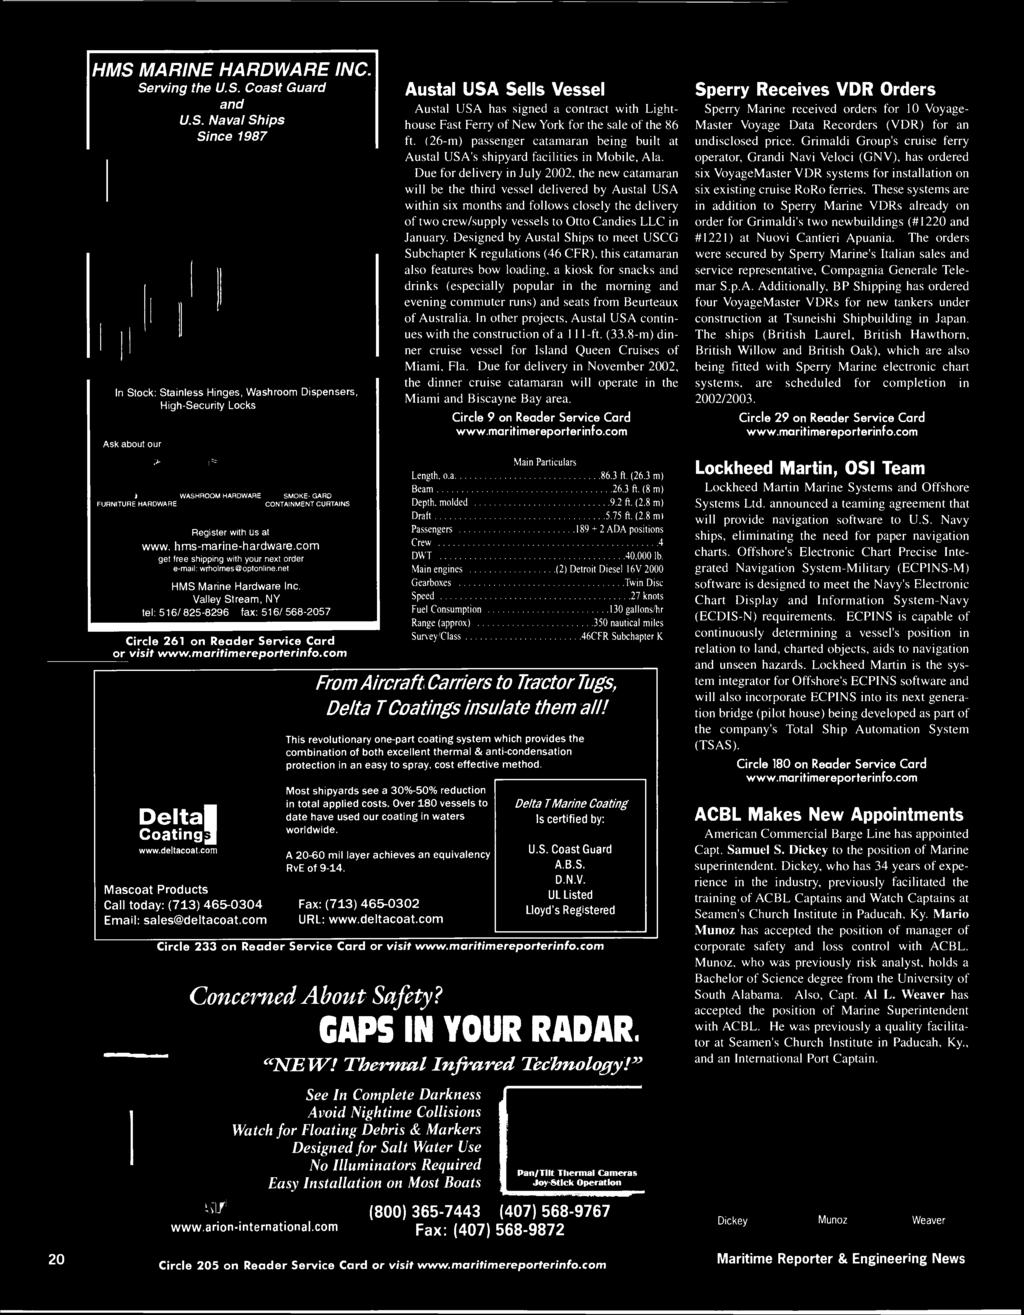 July 2002 Maritime Reporter And Engineering News Pwffi Wats Pdf Port A Cool Evaporator3600 Wiring Diagram Hms Marine Hardware Serving The Us Coast Guard Naval Ships Since 1987 Inc